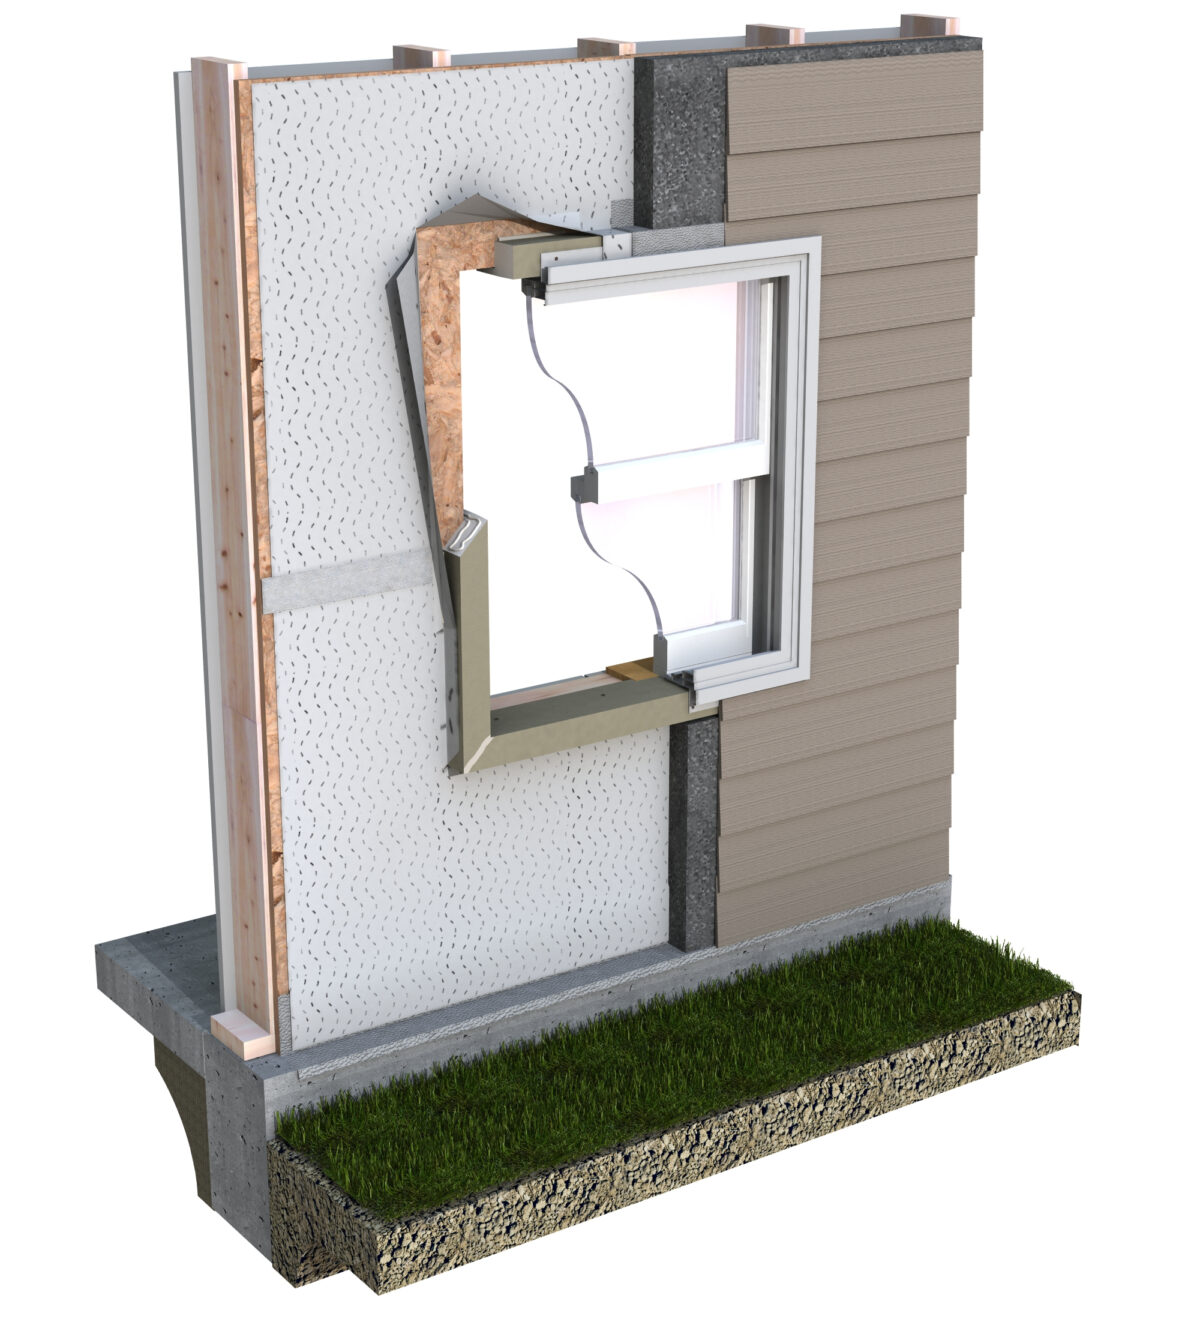 ThermalBuck wall assembly with Neopor insulation